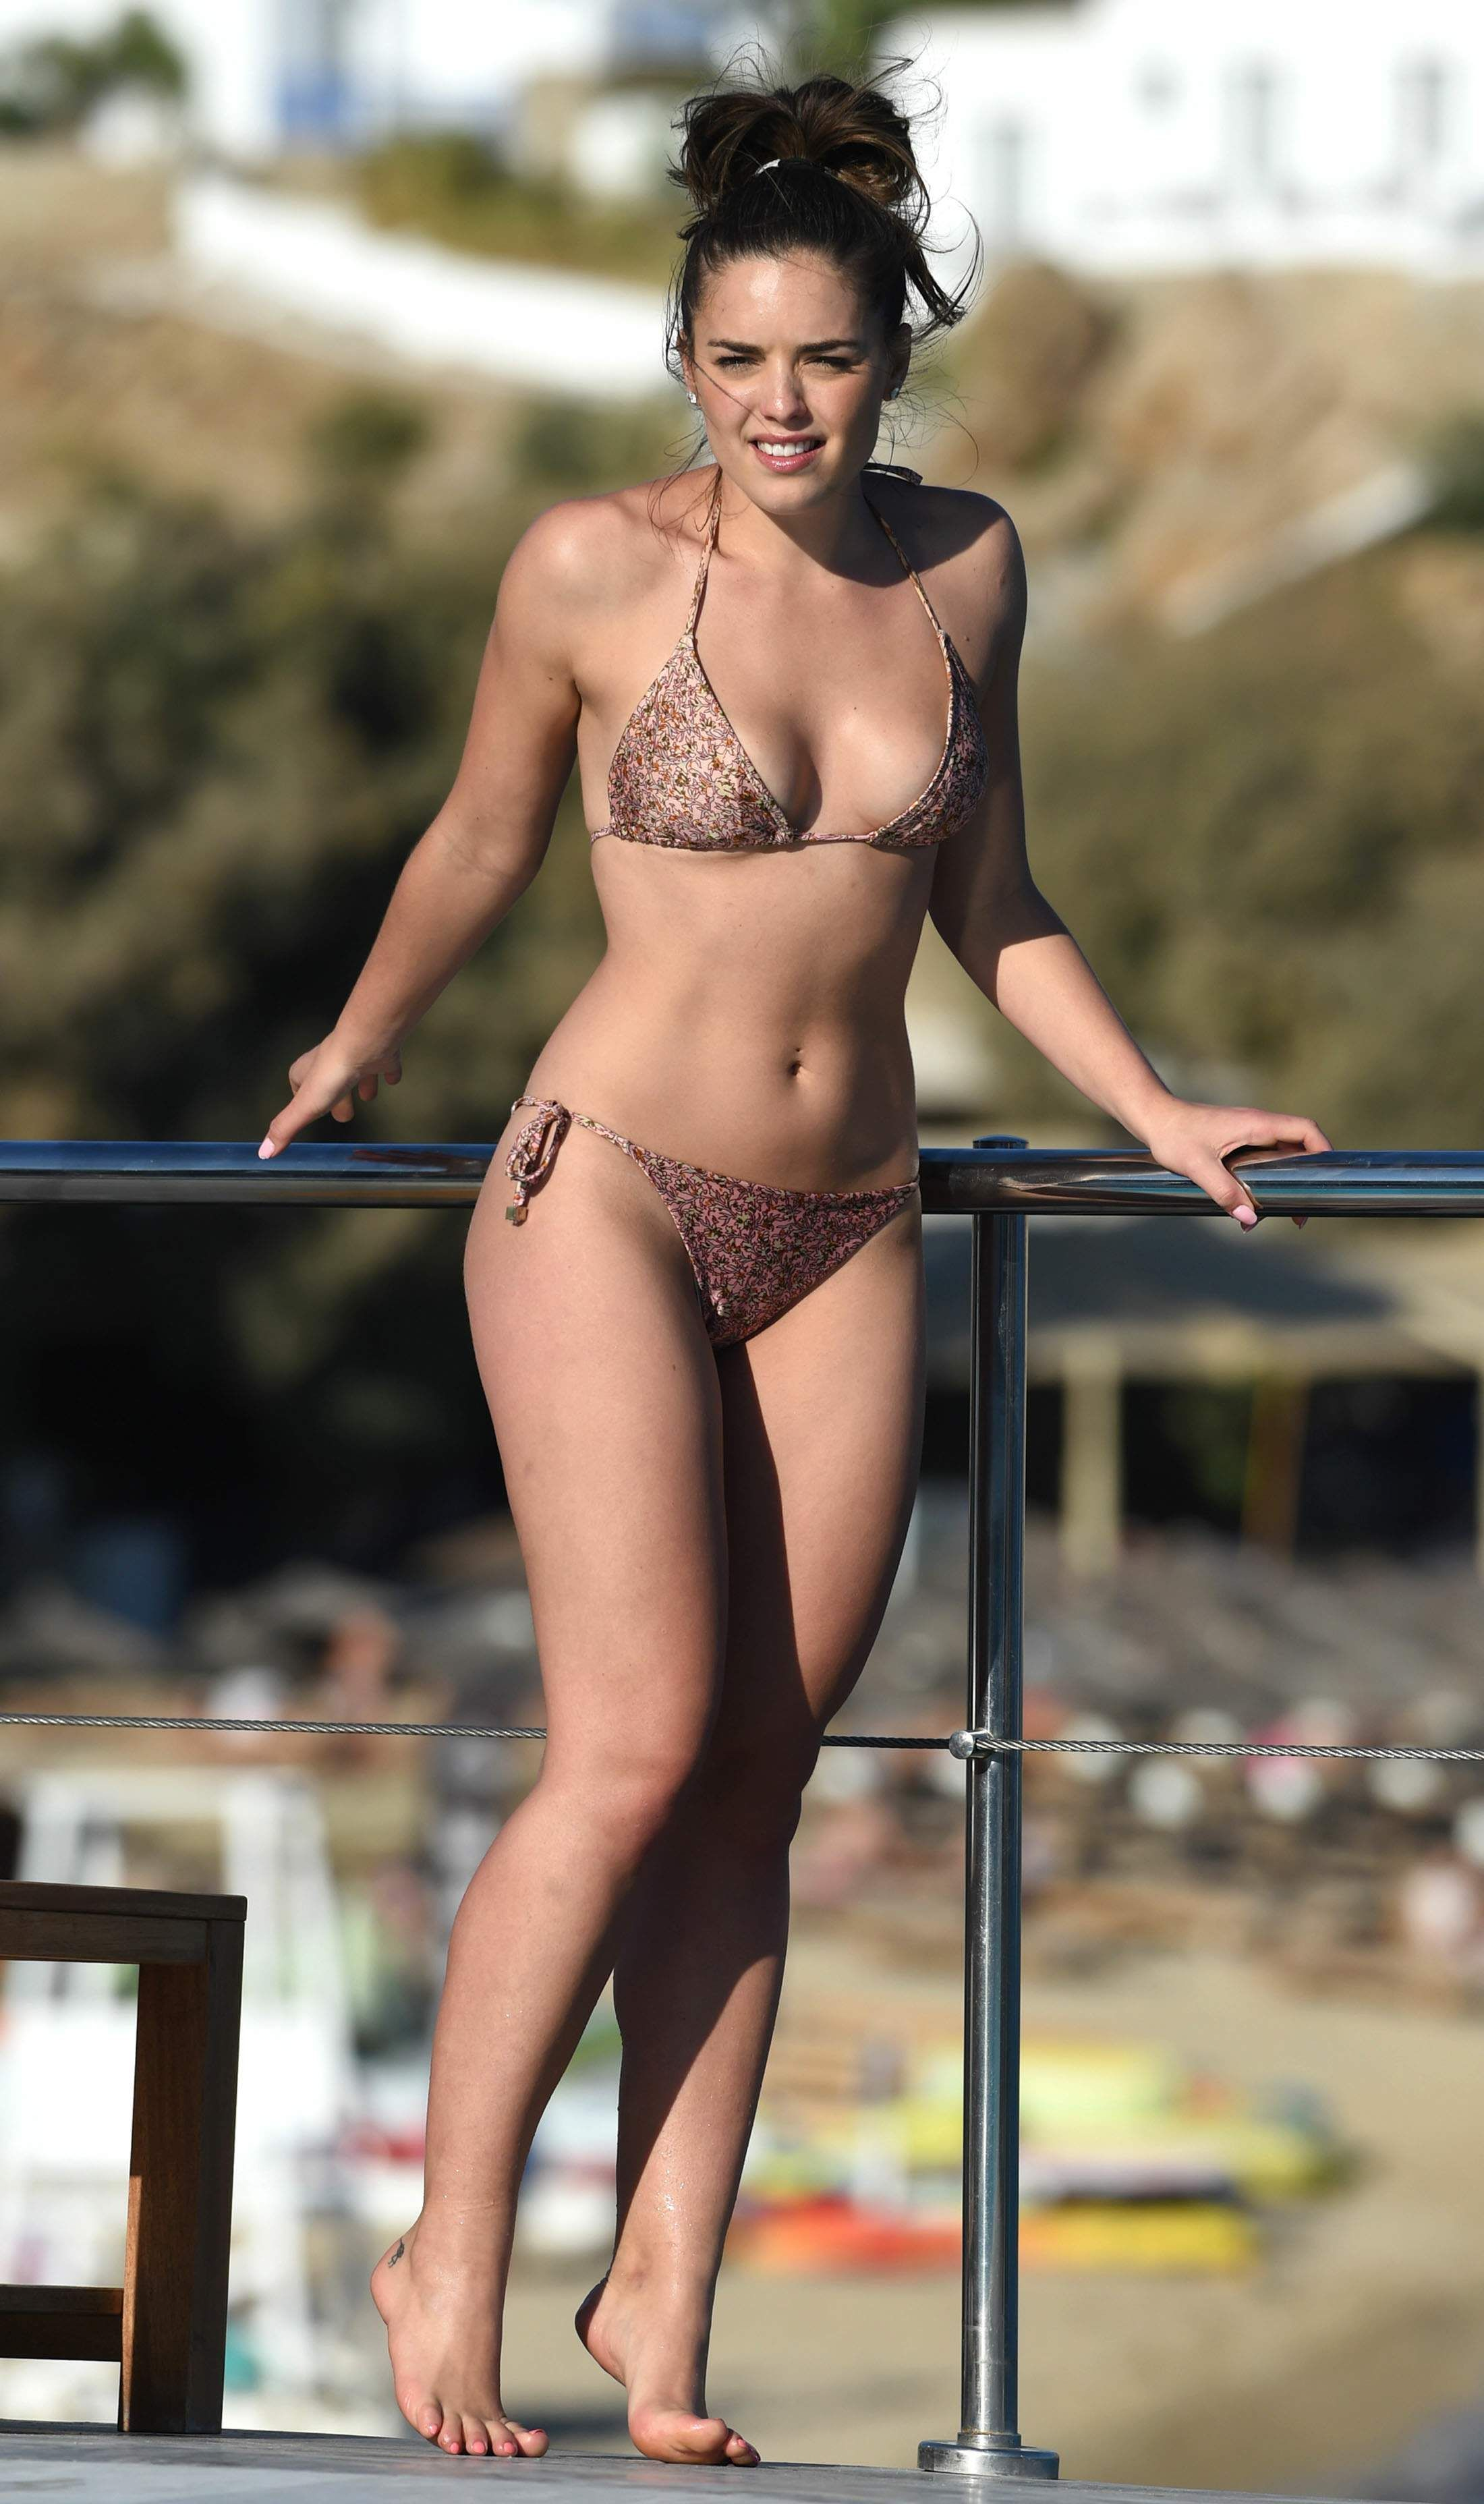 Feet Olympia Valance naked (48 foto and video), Pussy, Paparazzi, Feet, in bikini 2006